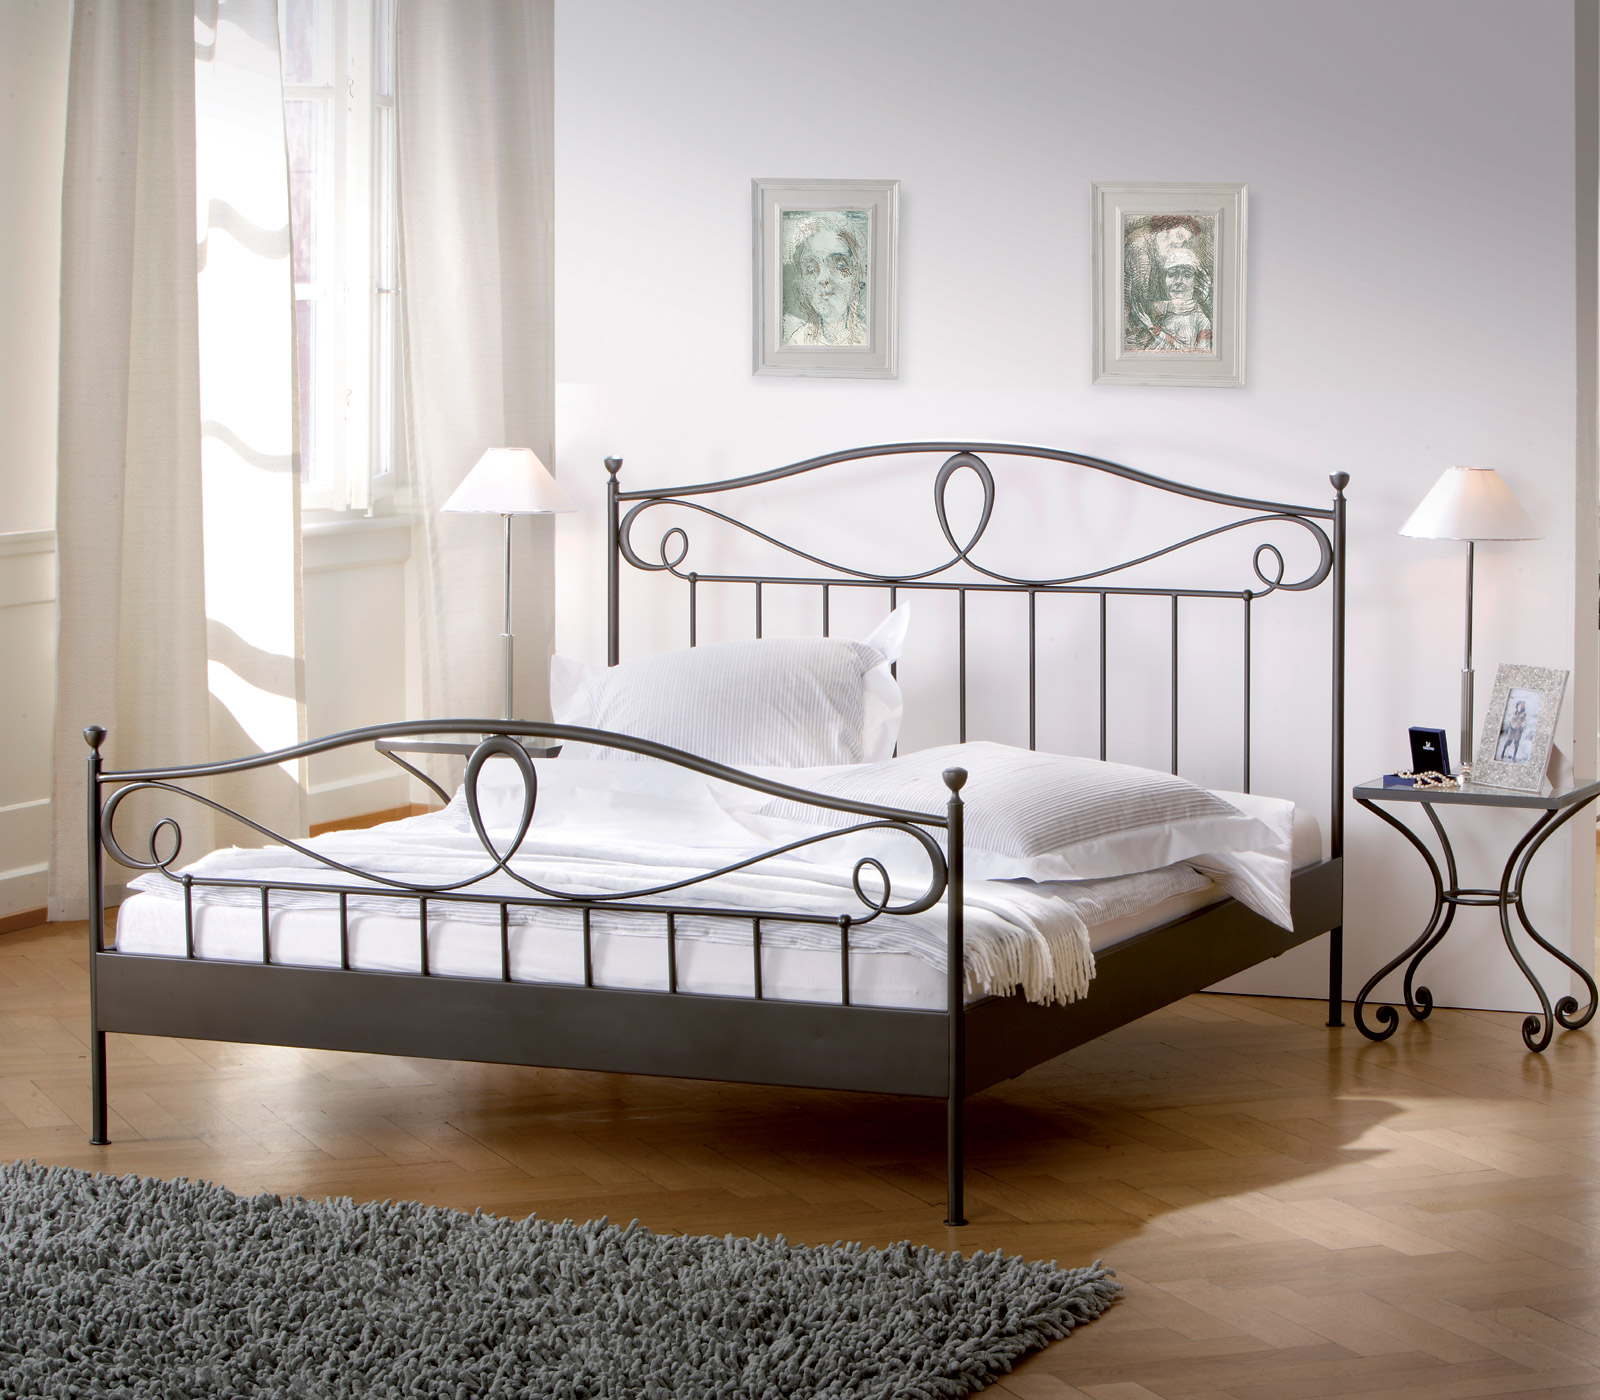 metallbett anthrazit bestseller shop f r m bel und einrichtungen. Black Bedroom Furniture Sets. Home Design Ideas